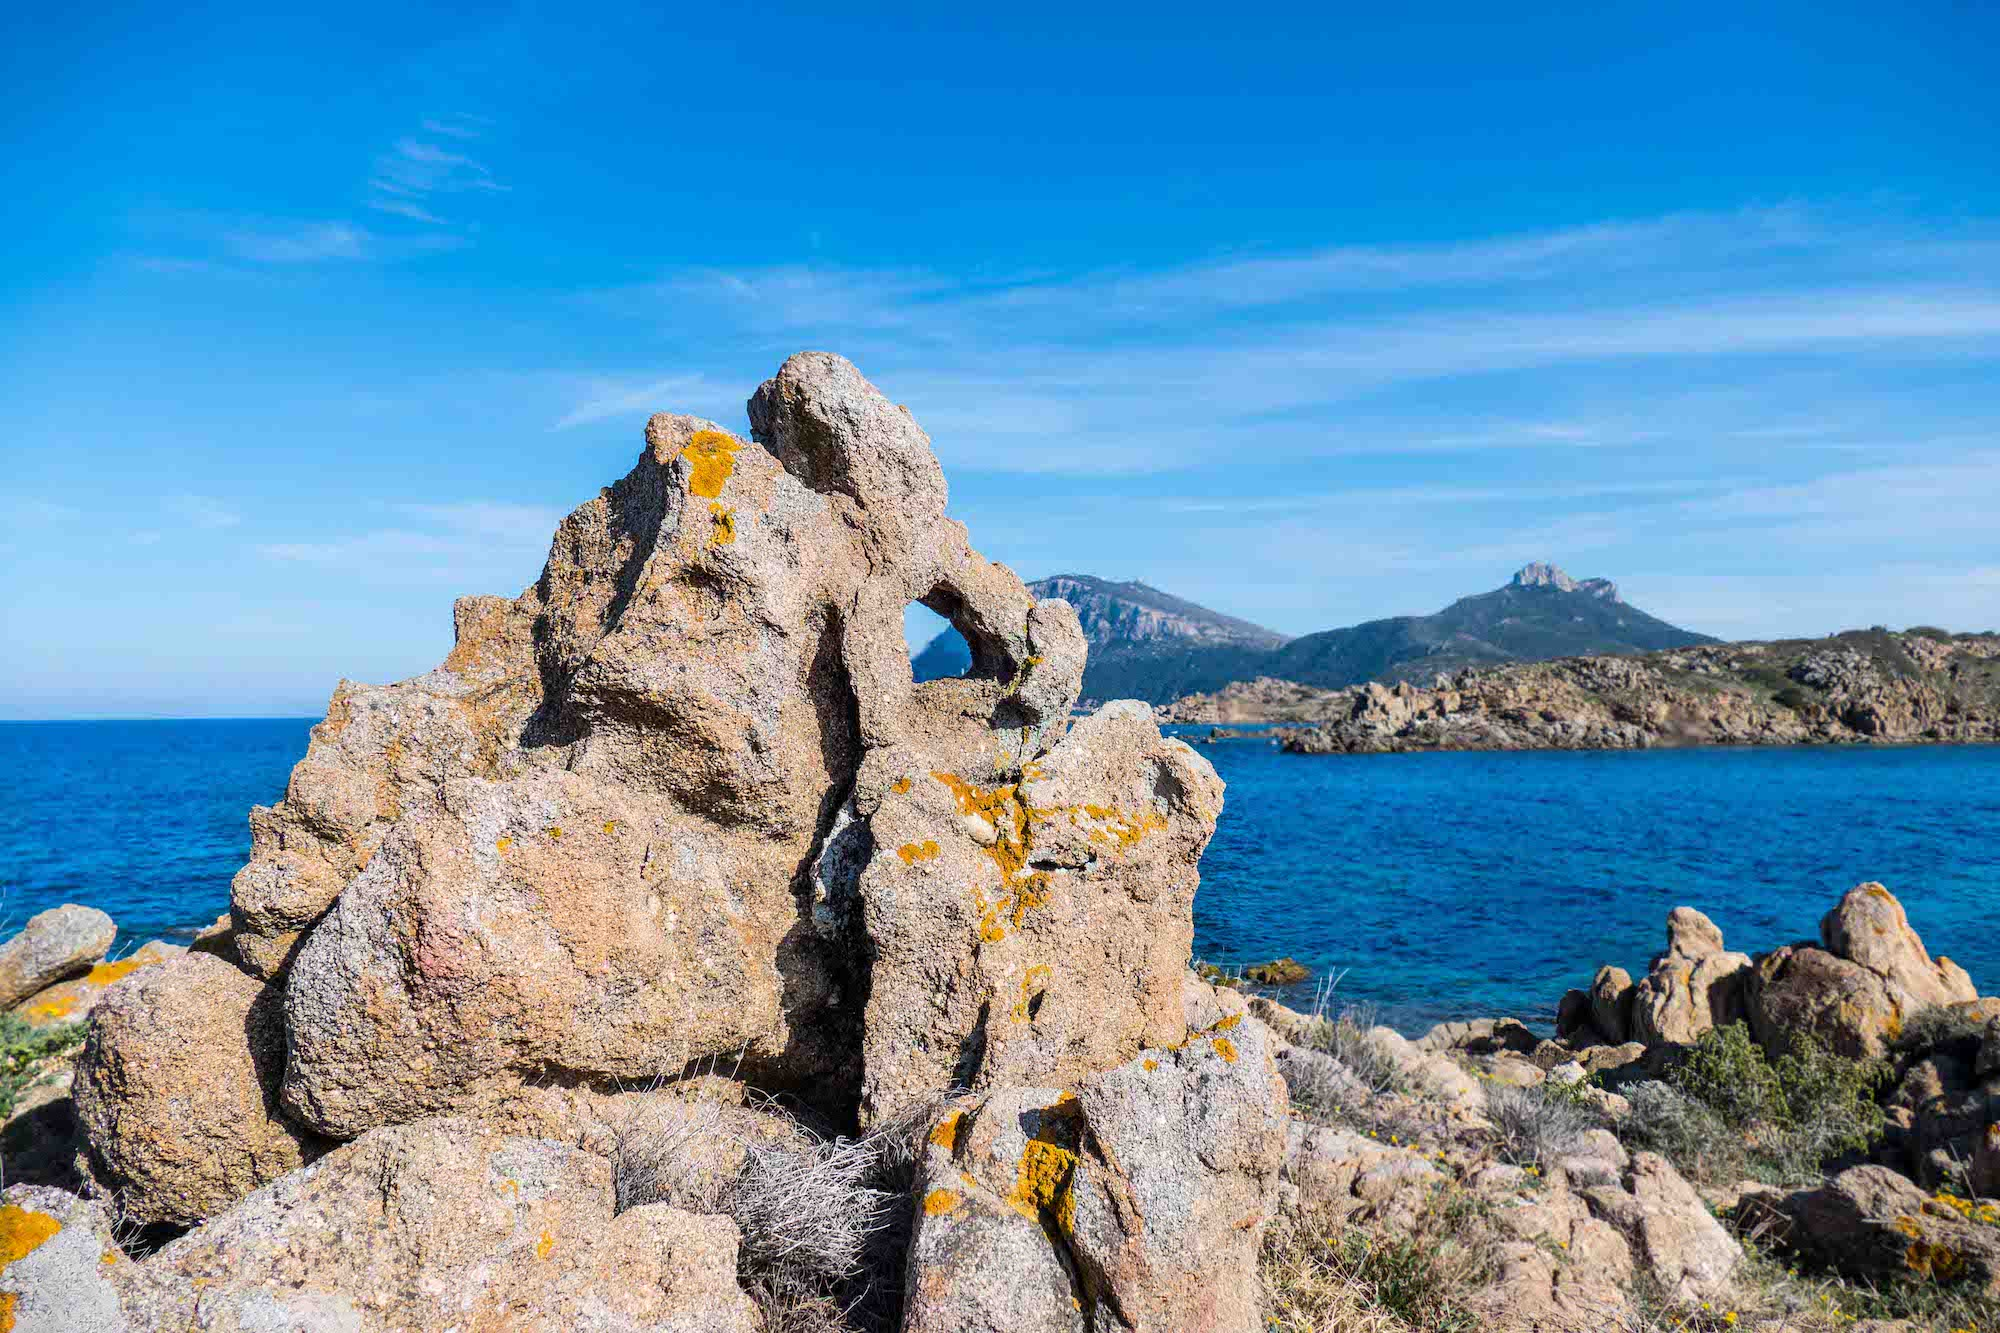 11 Interesting Facts About Sardinia That You Might Not Know